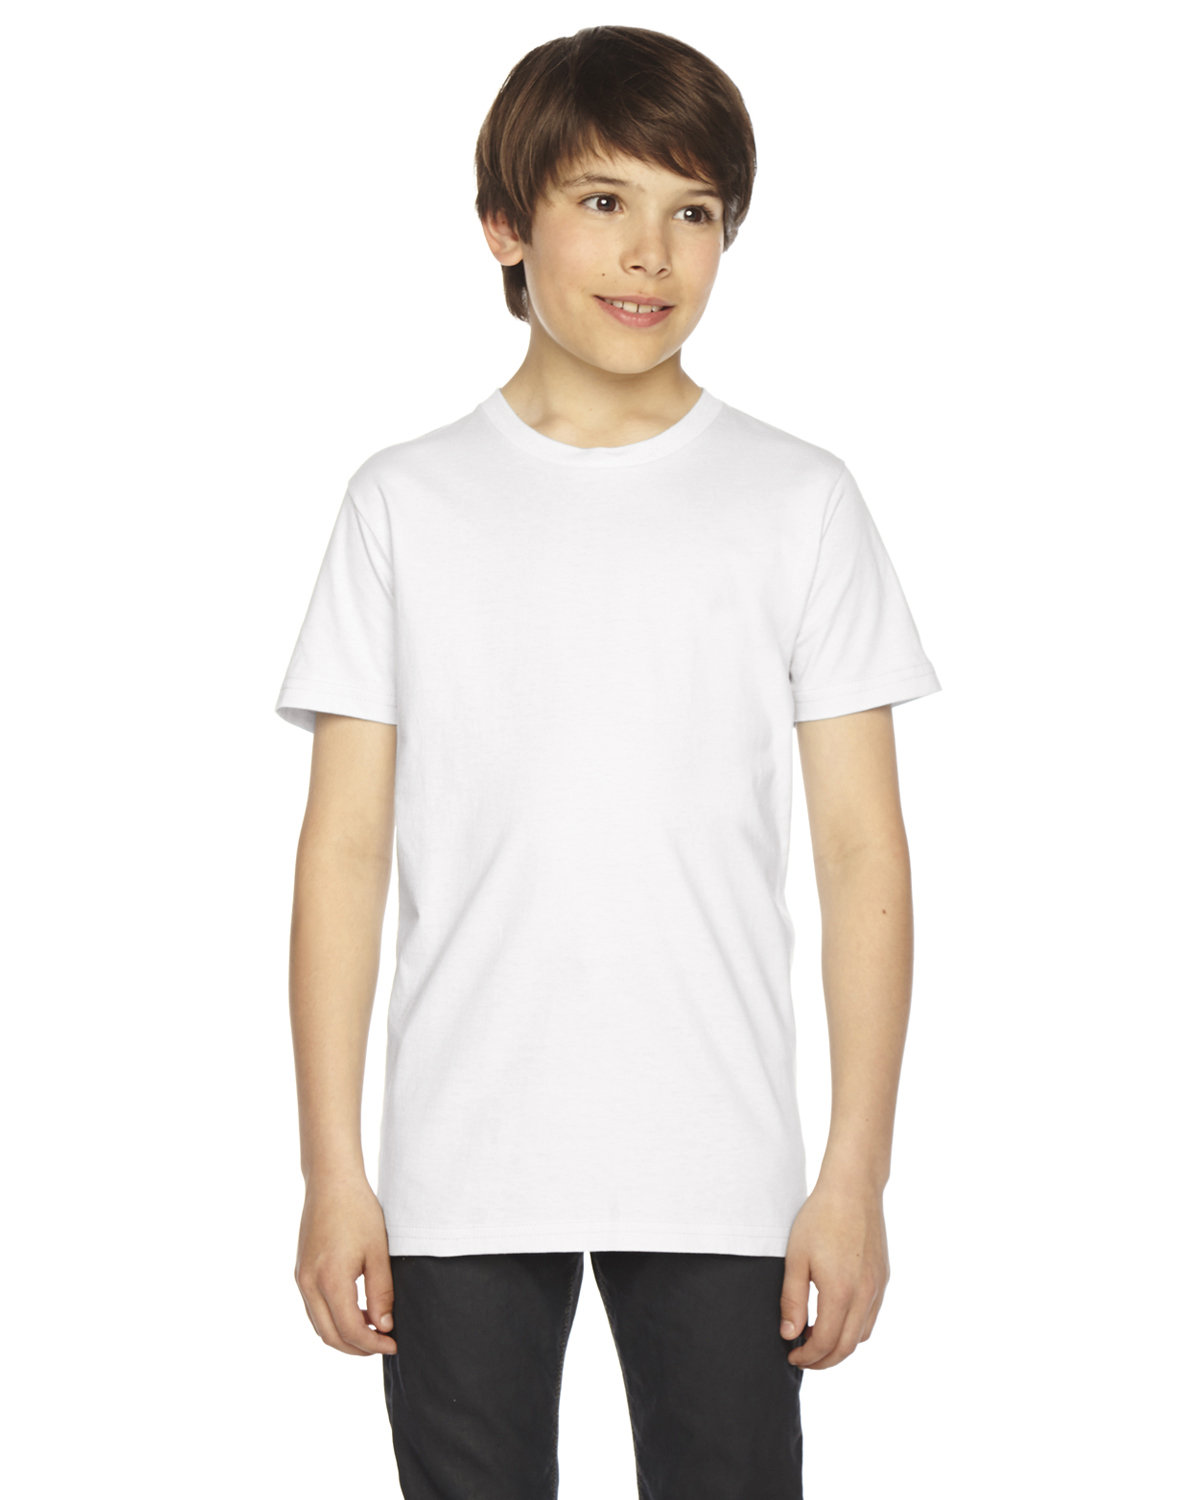 American Apparel Youth Fine Jersey Short-Sleeve T-Shirt WHITE